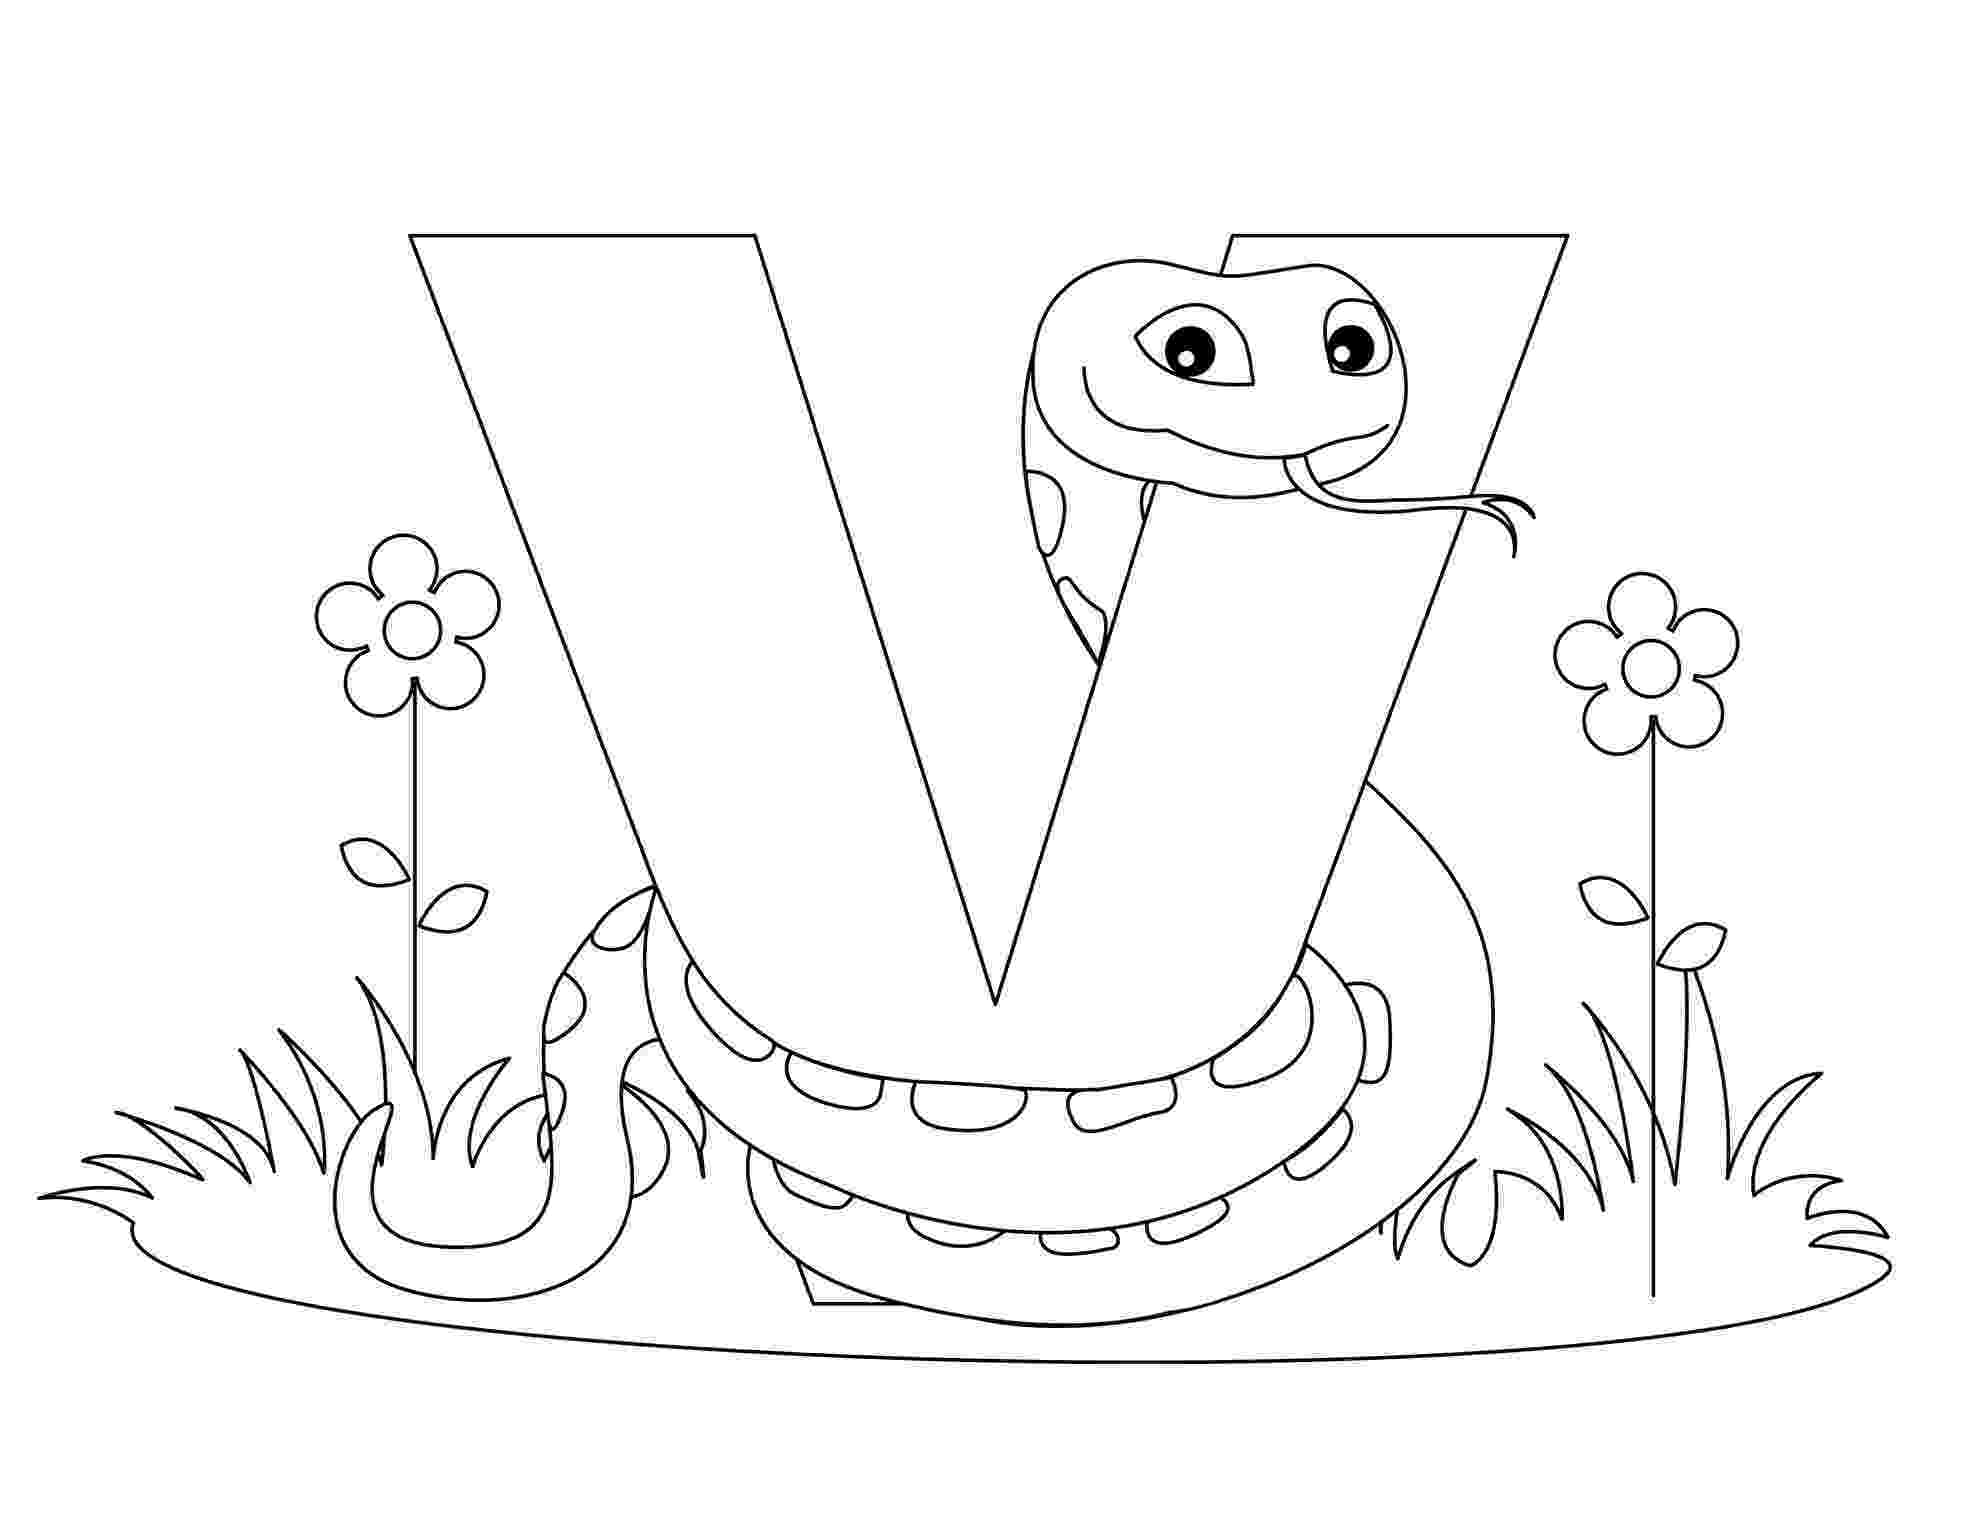 free alphabet coloring pages free printable alphabet coloring pages for kids best alphabet coloring pages free